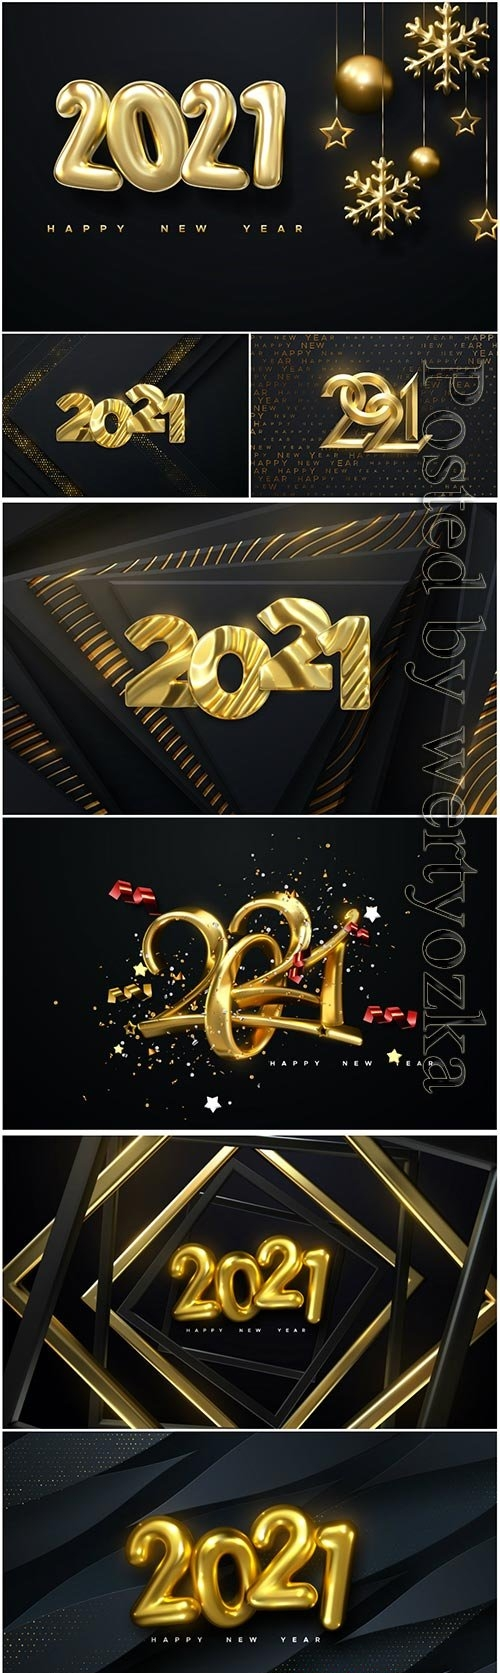 Happy new 2021 year, golden numbers on black background textured